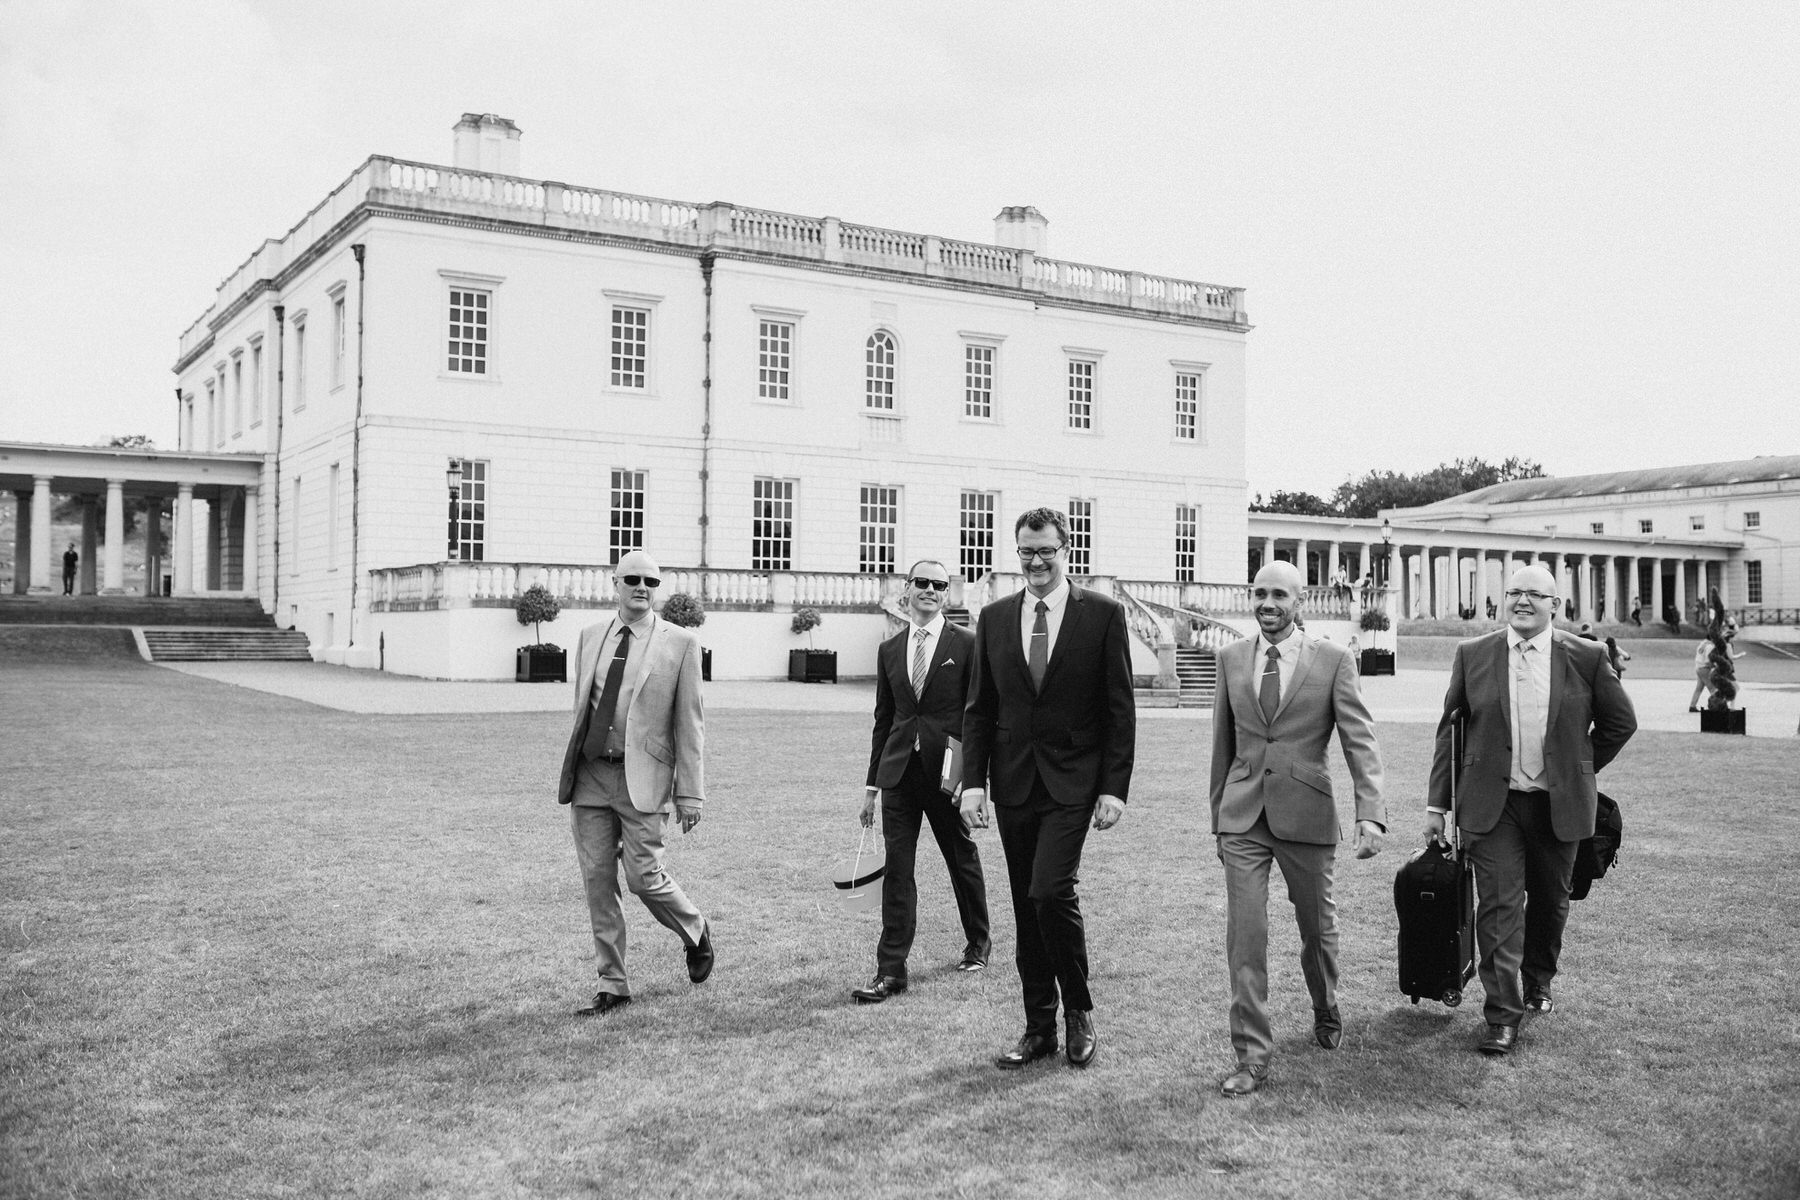 51 two grooms walking through Greenwich with wedding party BW.jpg